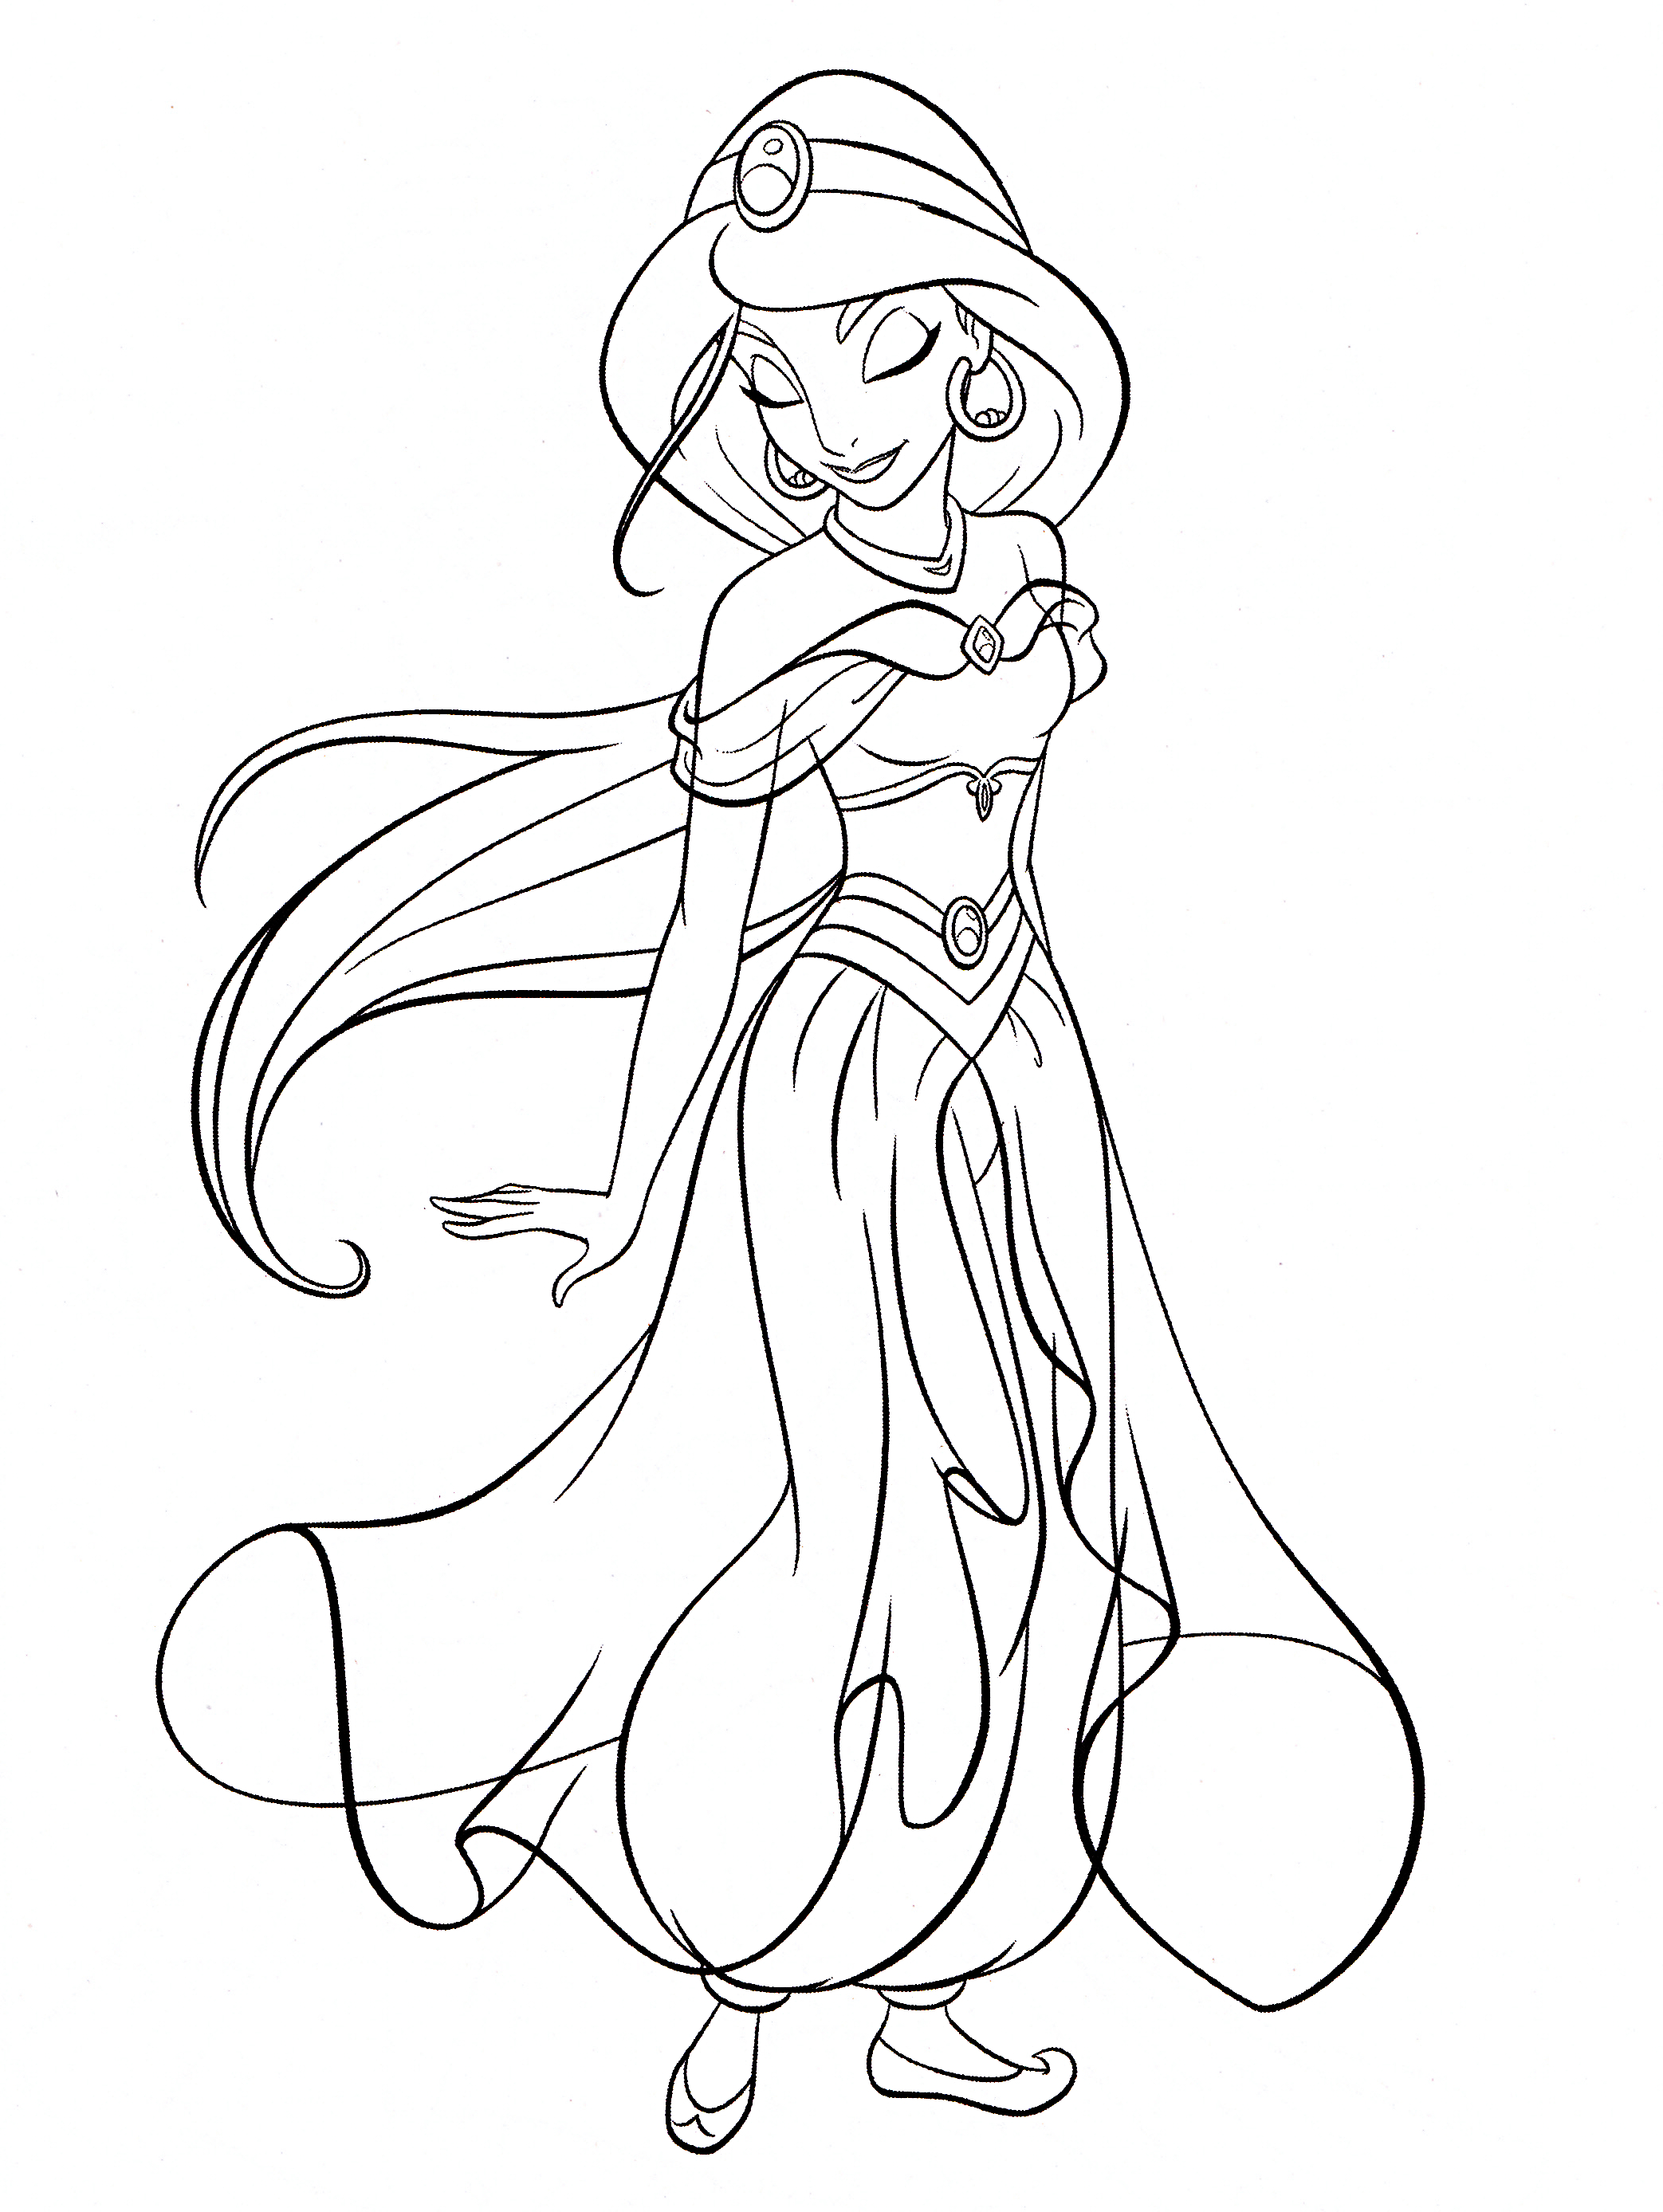 Walt Disney Coloring Pages - Princess Jasmine | Disney avec Coloriage Disney